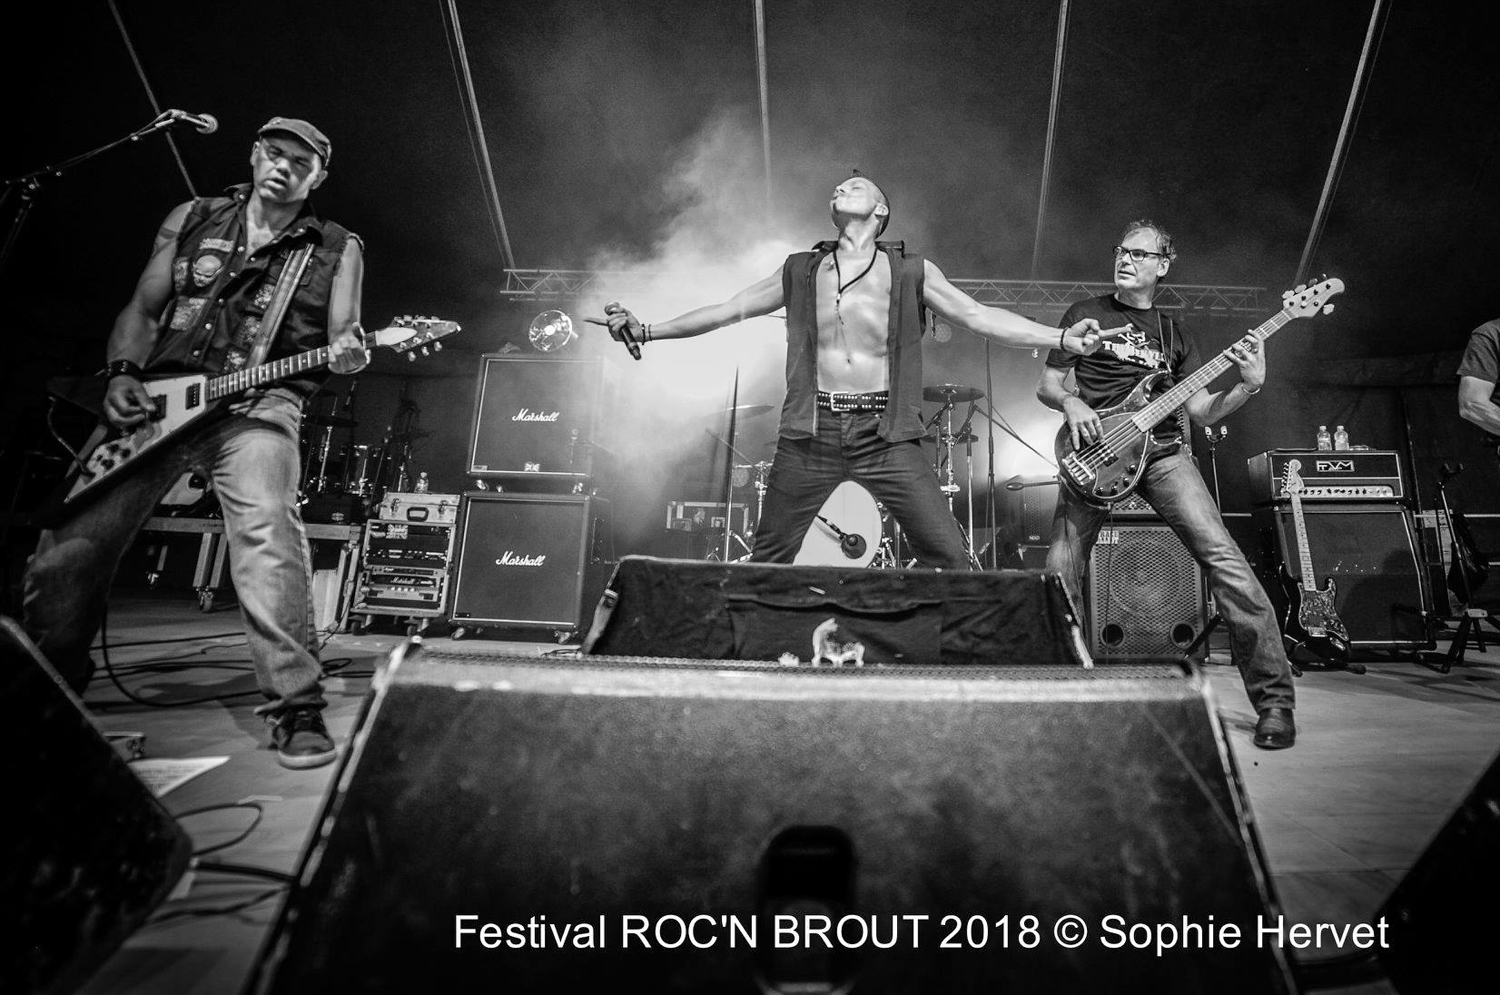 08_The_Jekylls_Rockn_Brout_2